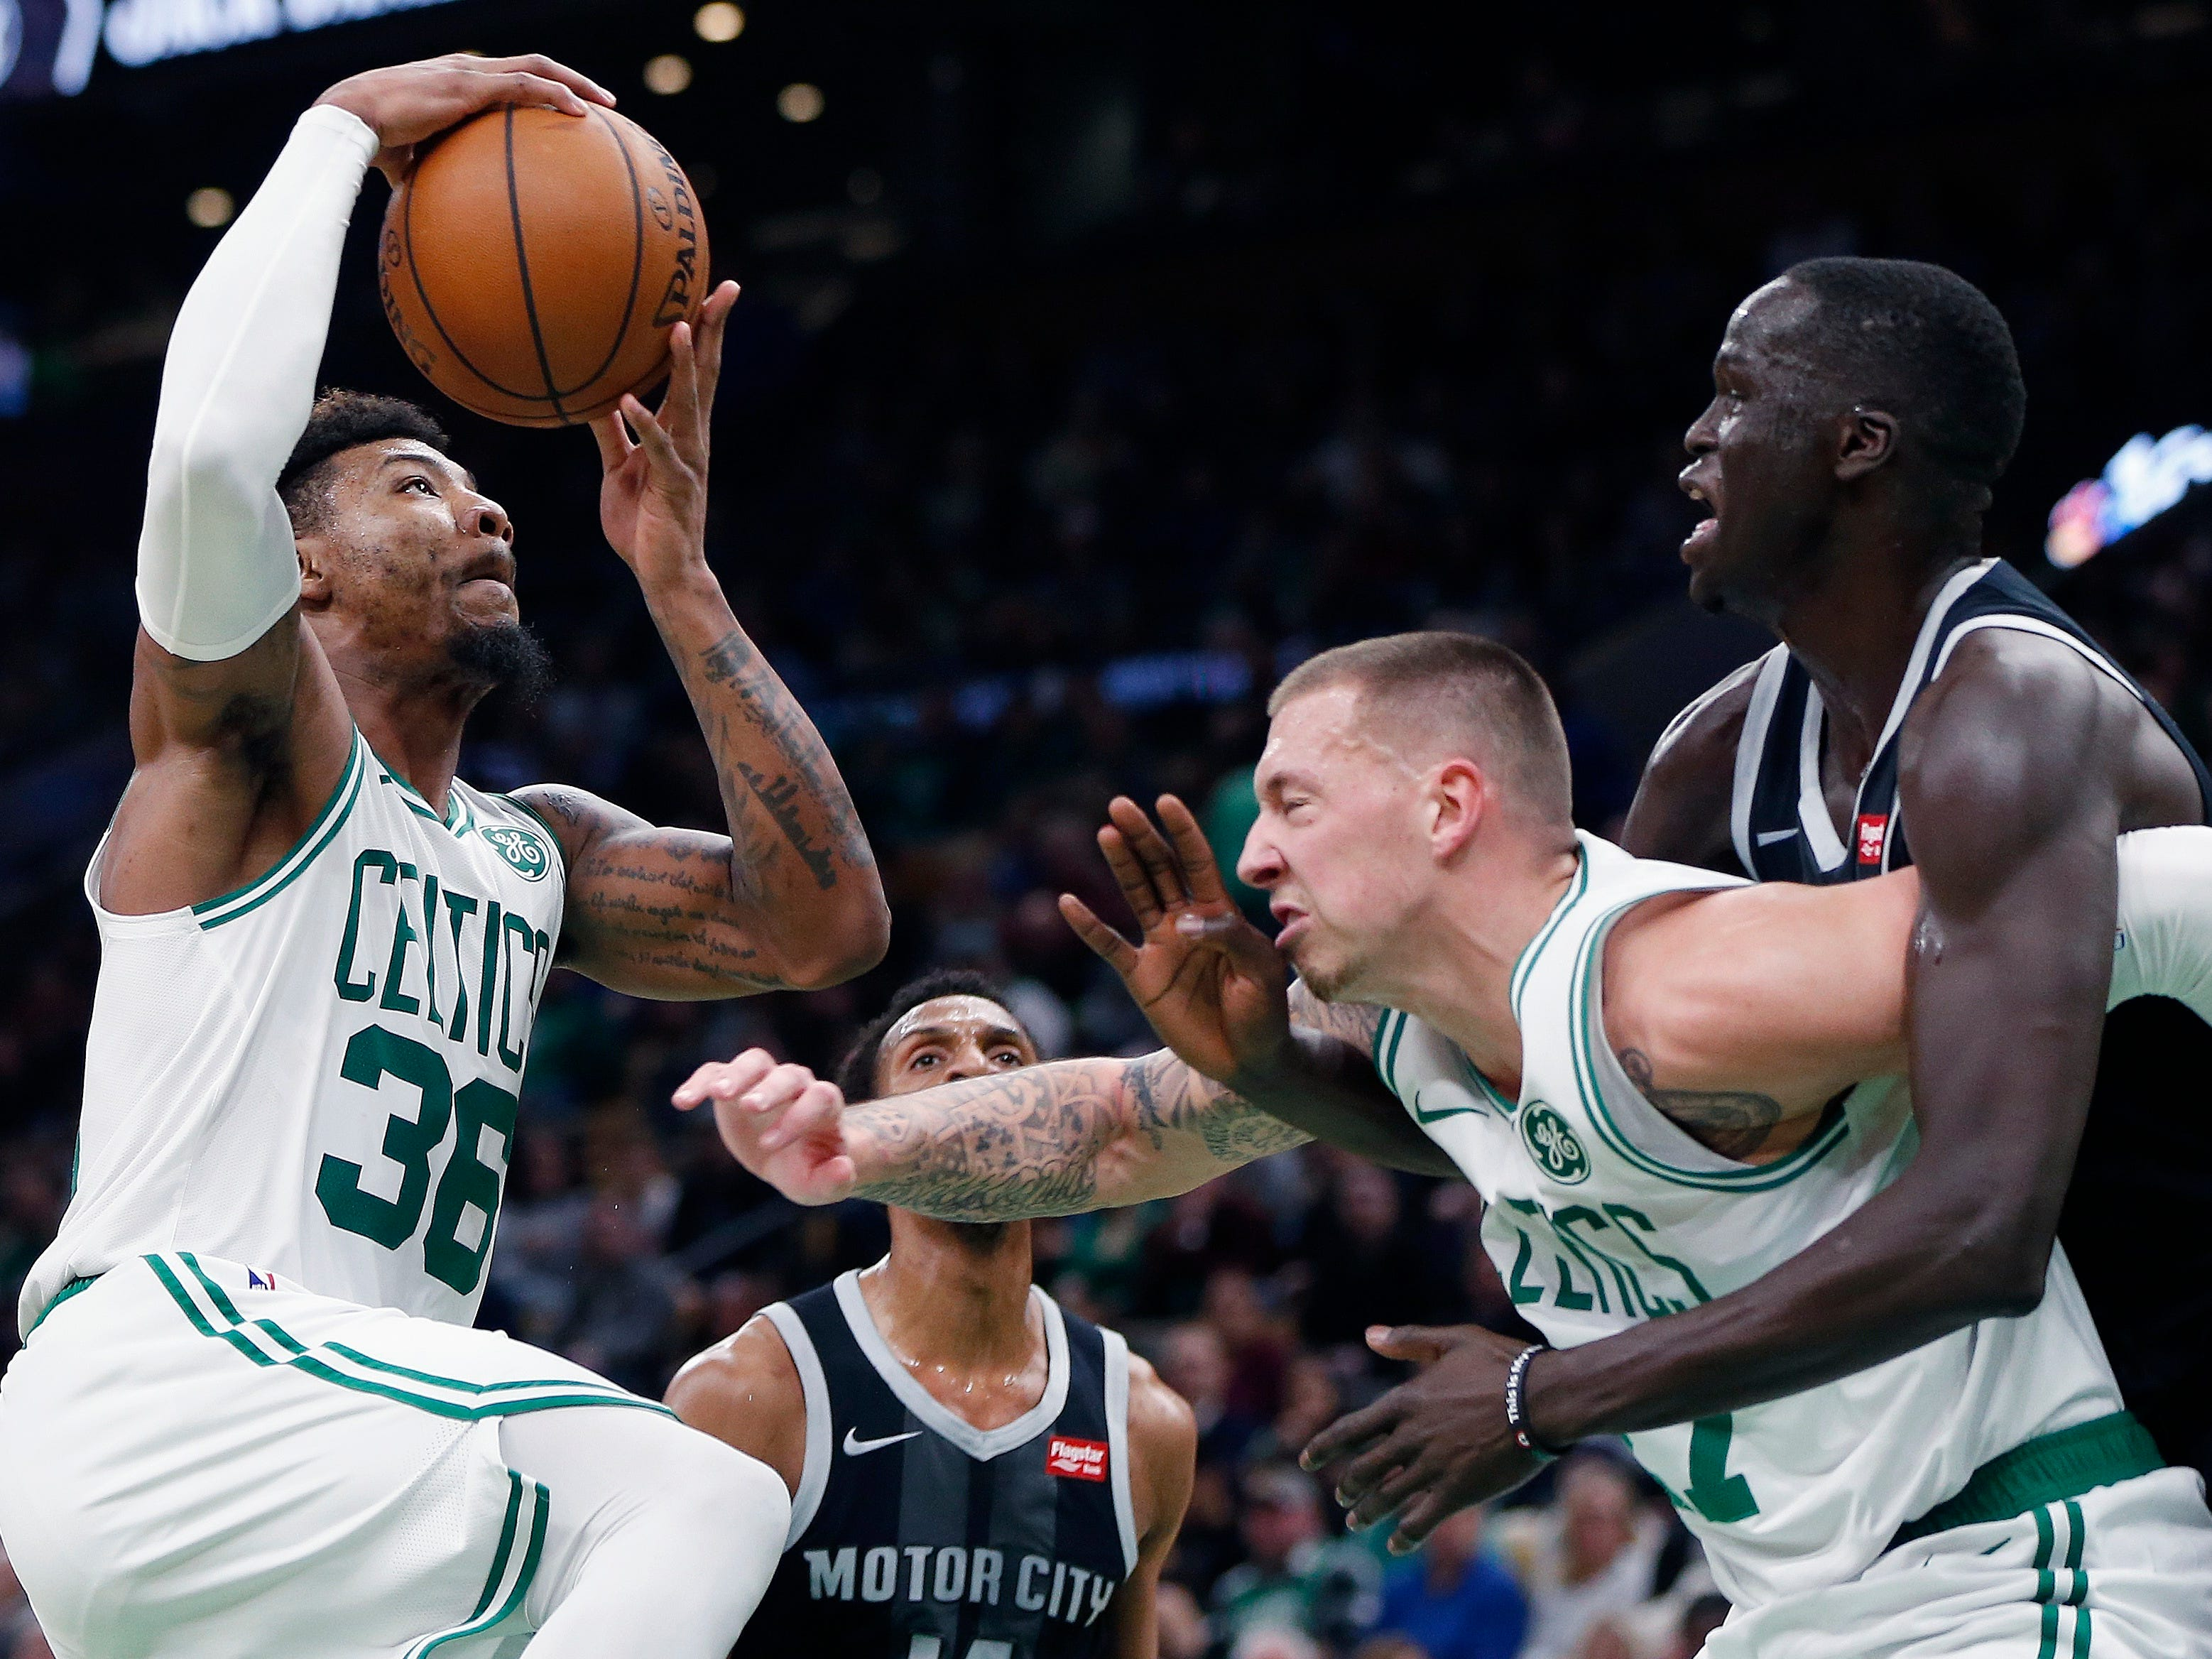 Boston Celtics' Marcus Smart, left, goes up to shoot as Daniel Theis, center, screens Detroit Pistons' Thon Maker, right, during the first half.